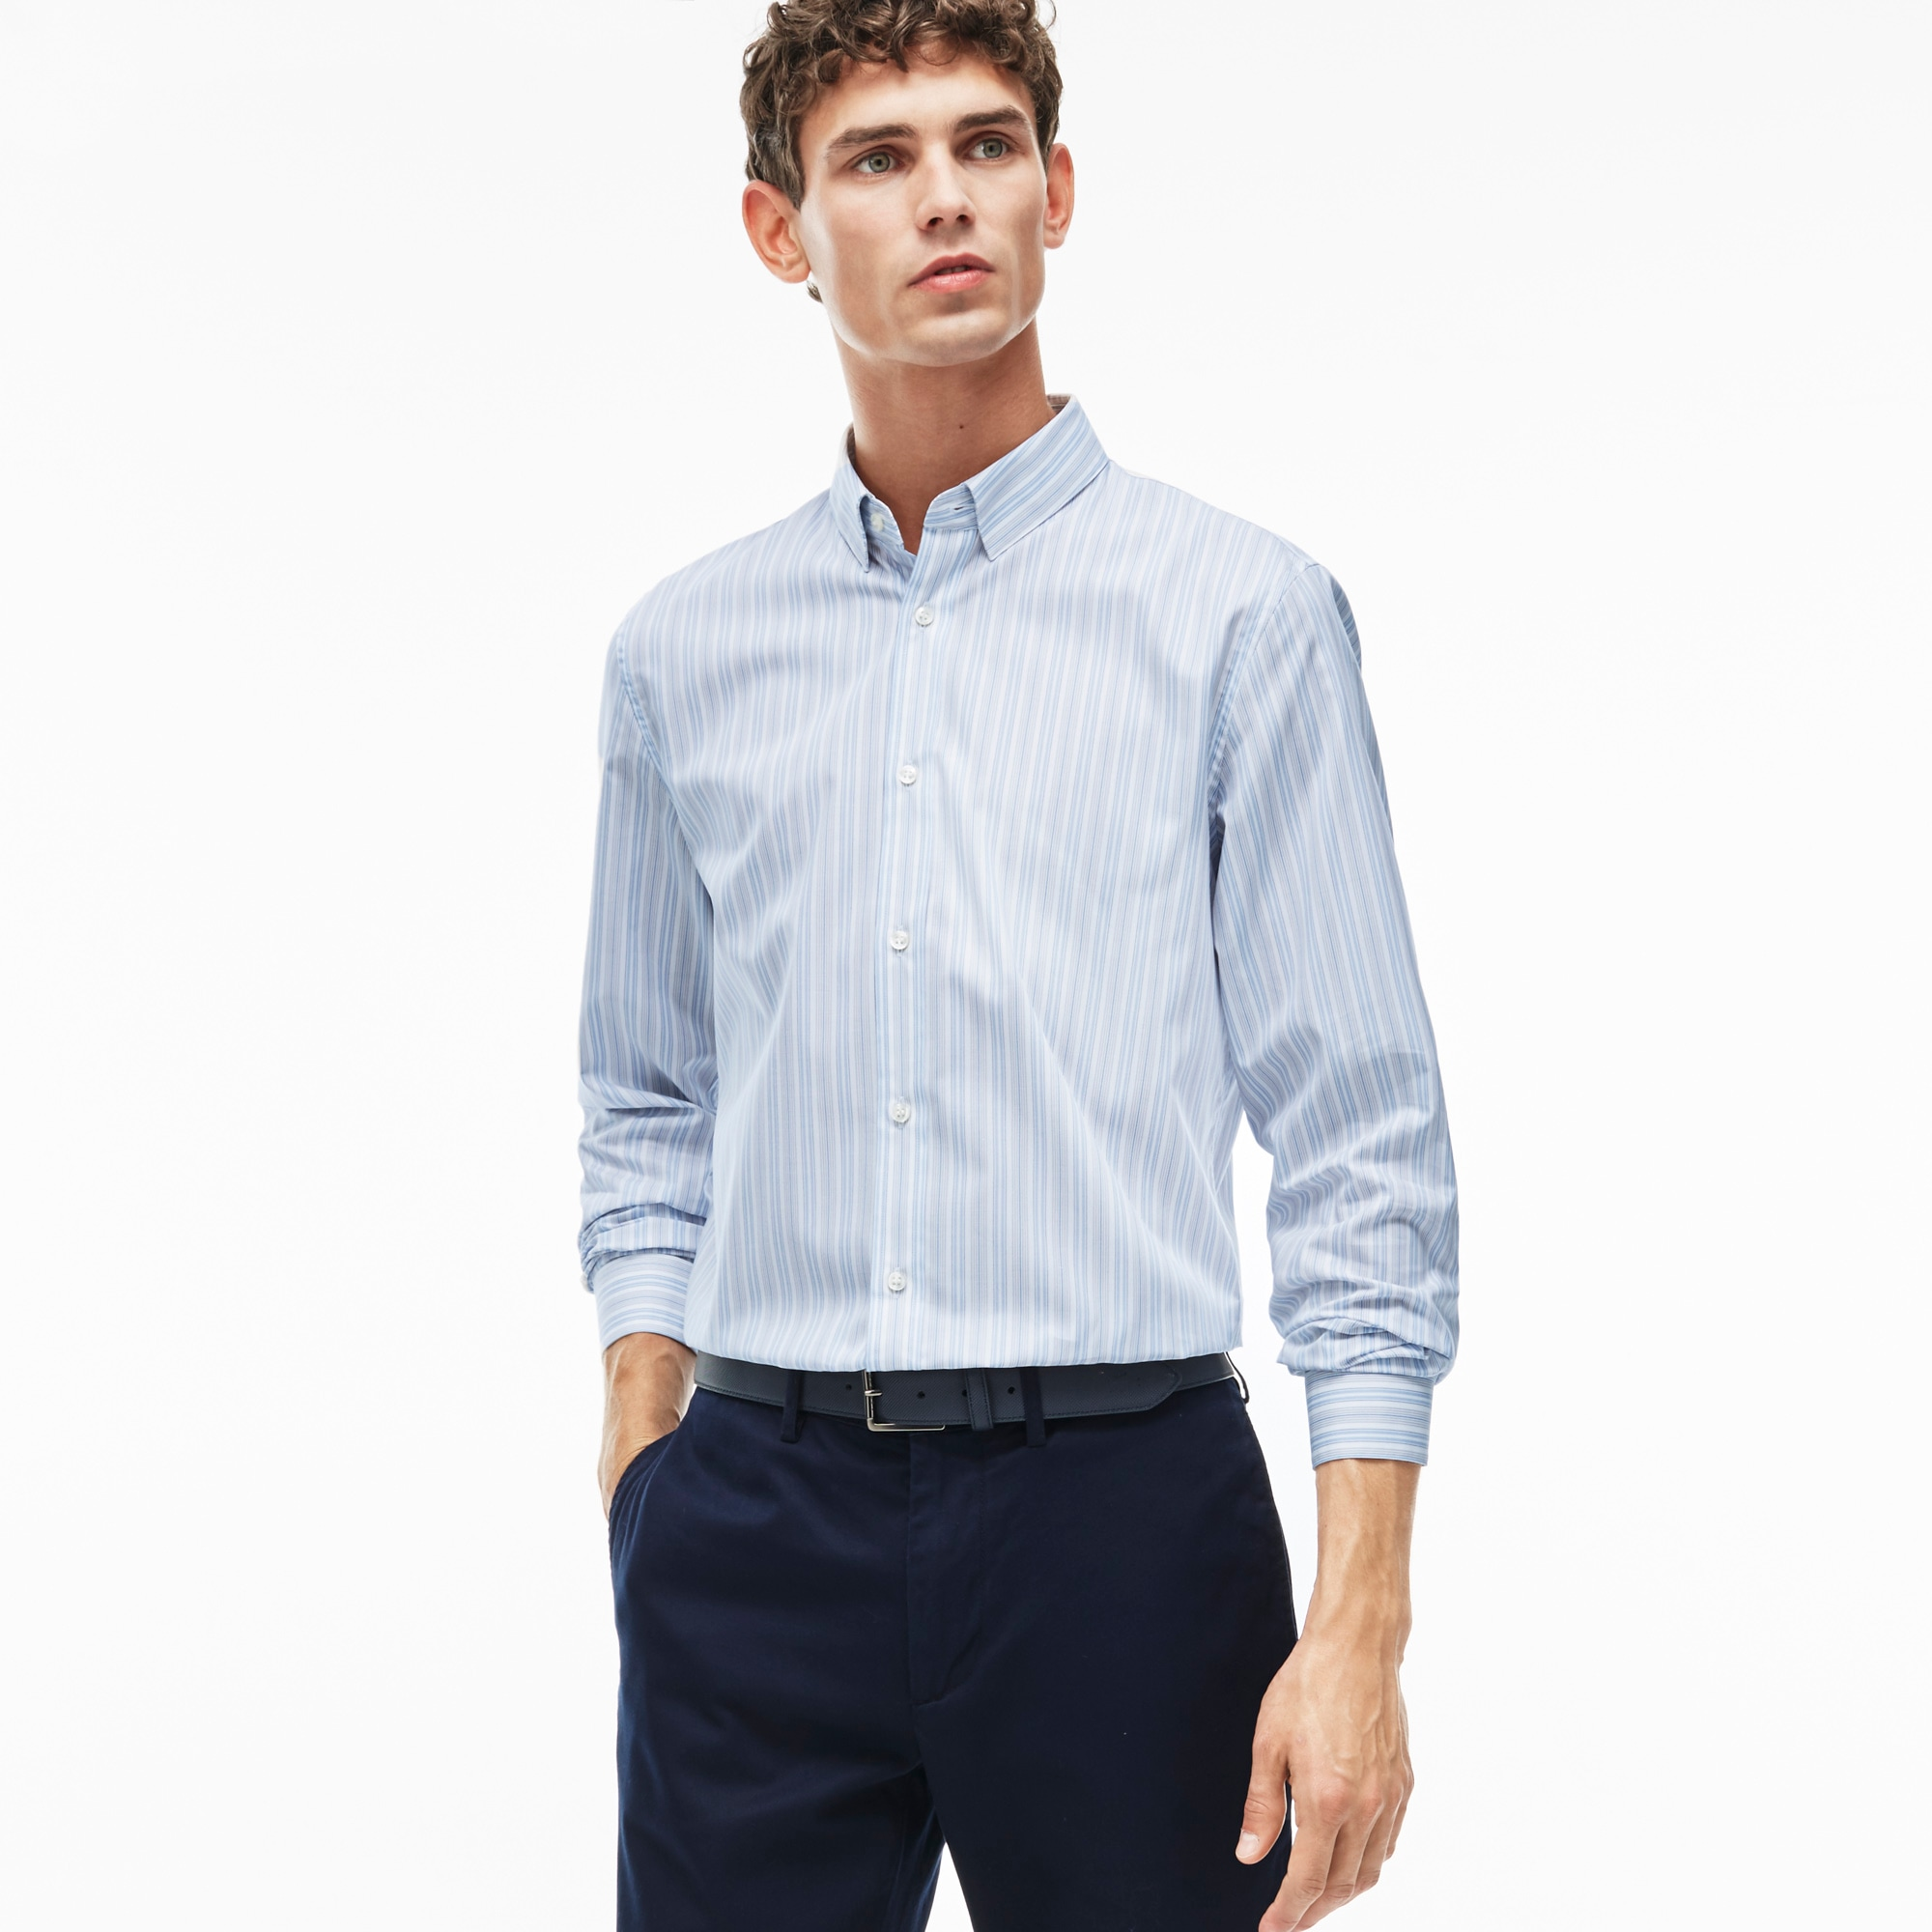 Men's Slim Fit Bicolor Striped Poplin Shirt